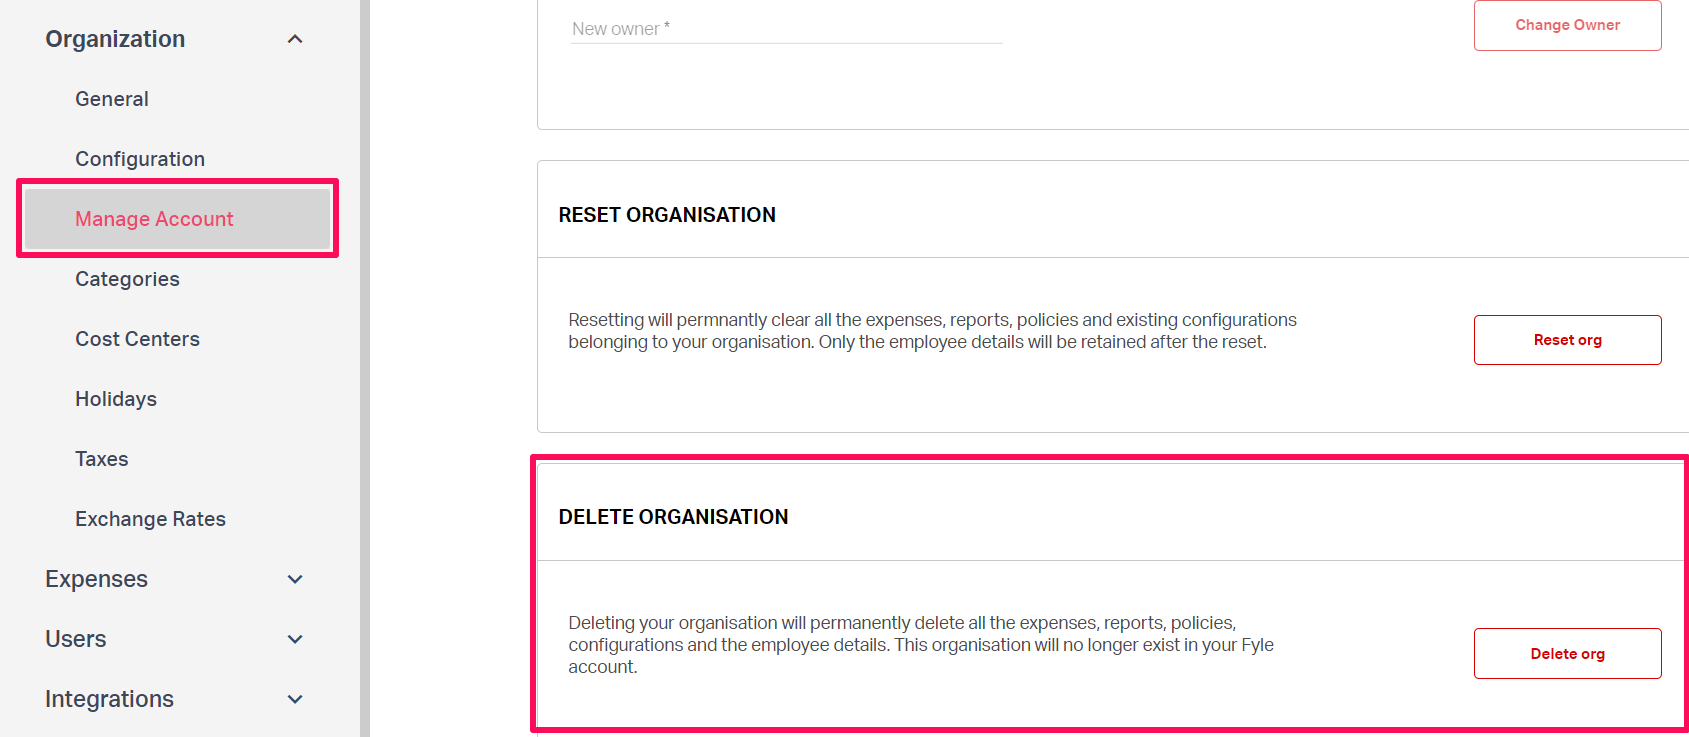 Deleting organization on Fyle in the settings tab